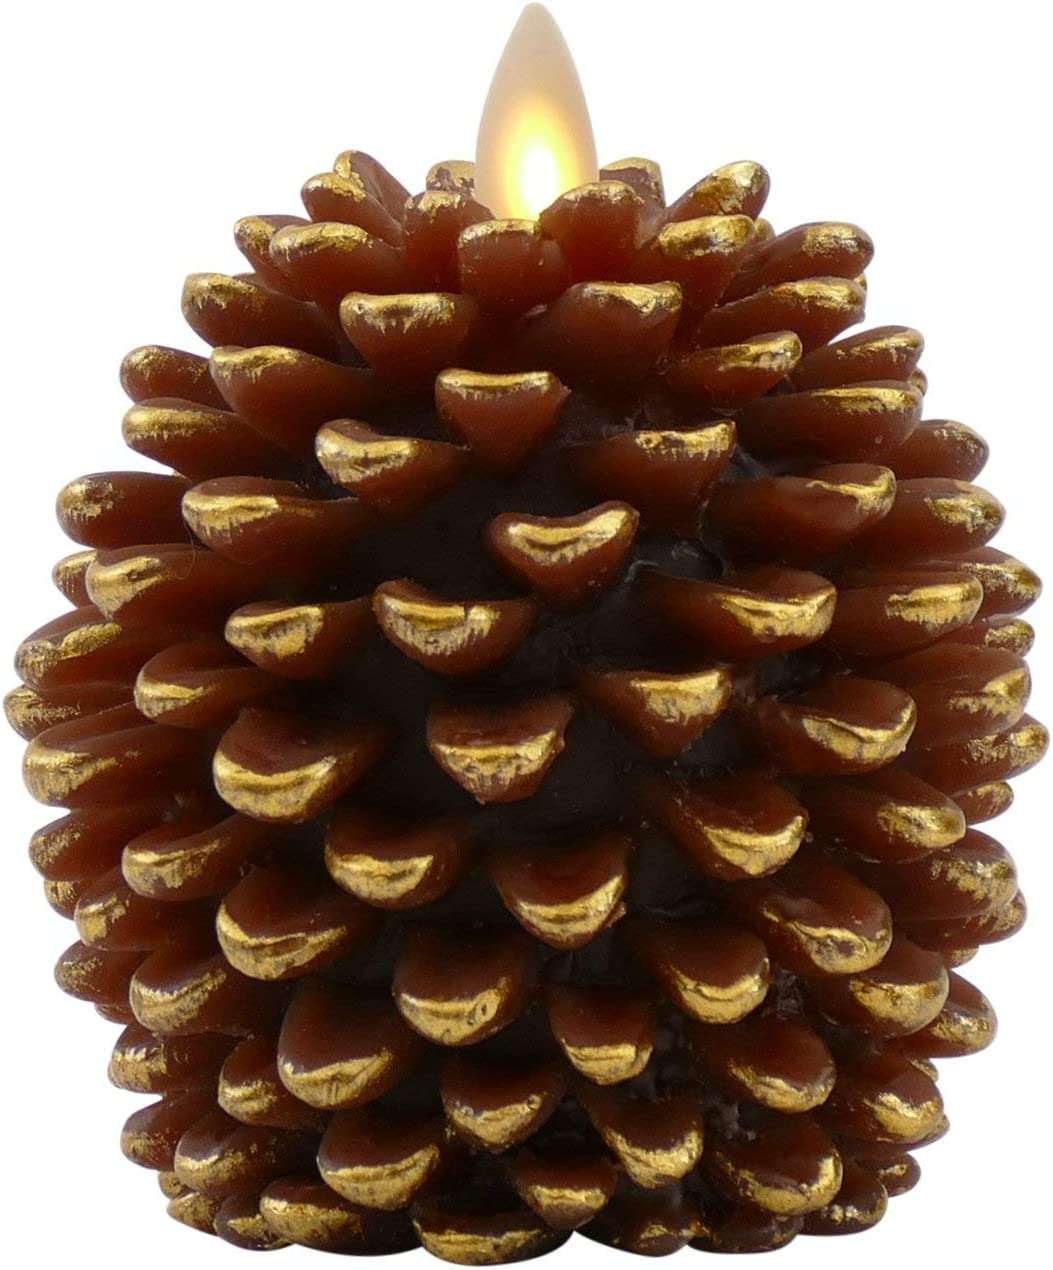 Luminara Pine Cone Candles Luminara Flameless Candles Unscented Brown with Timer